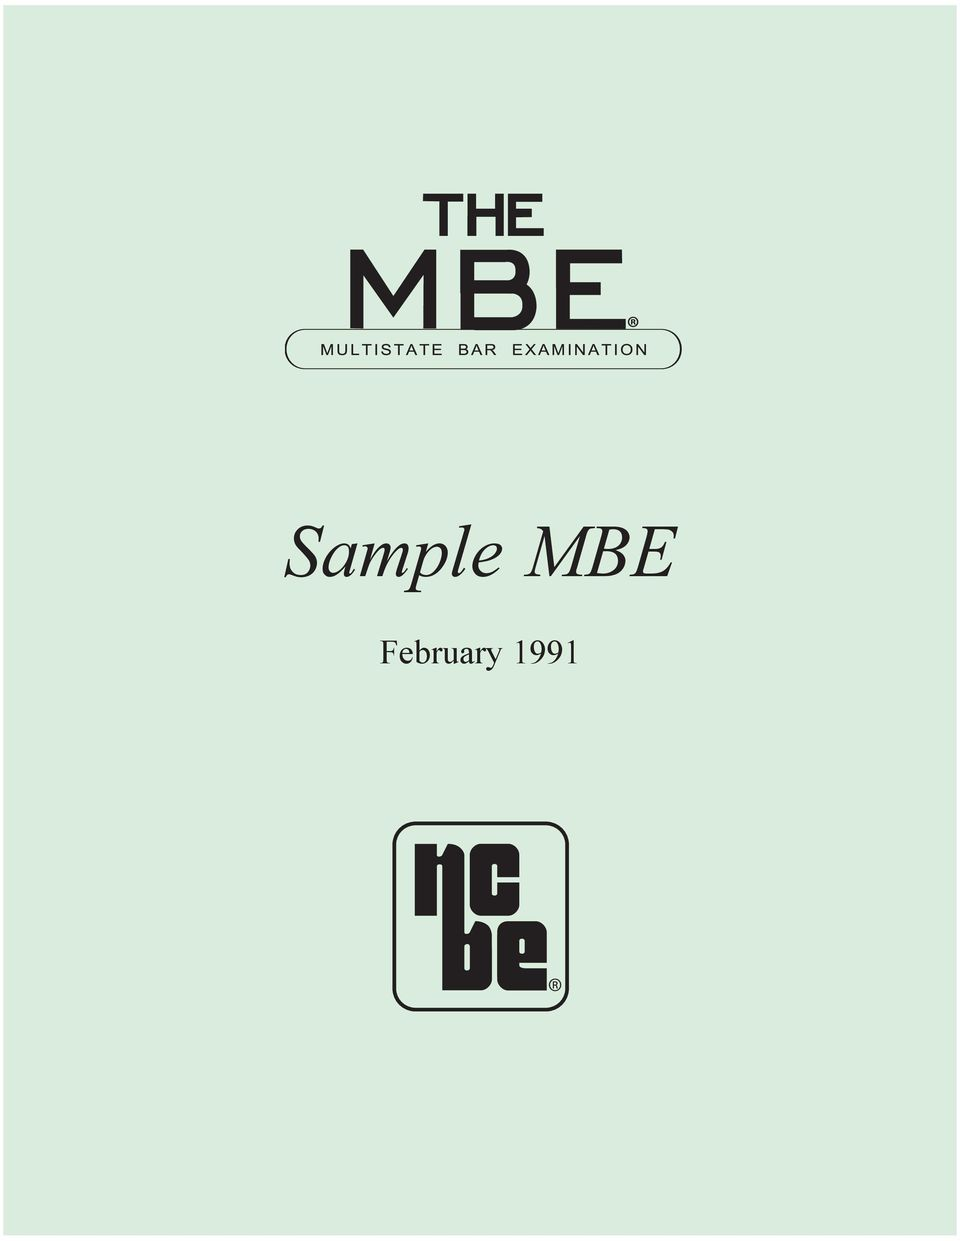 SampleMBE_reprint2010 qxp 1/29/ :00 AM Page 1 Sample MBE